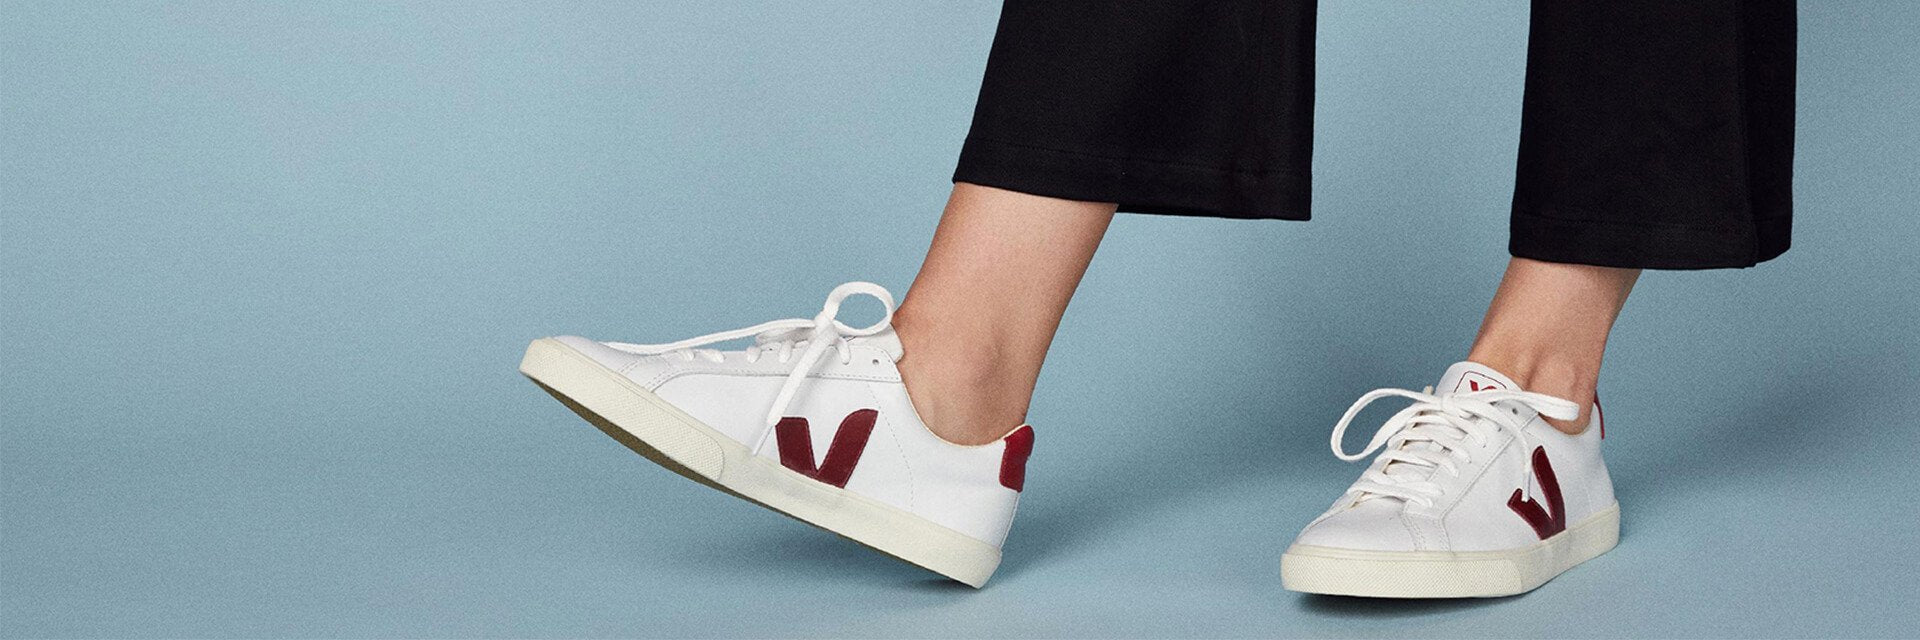 veja-sustainable-slow-fashion-ethical-clothing-brands